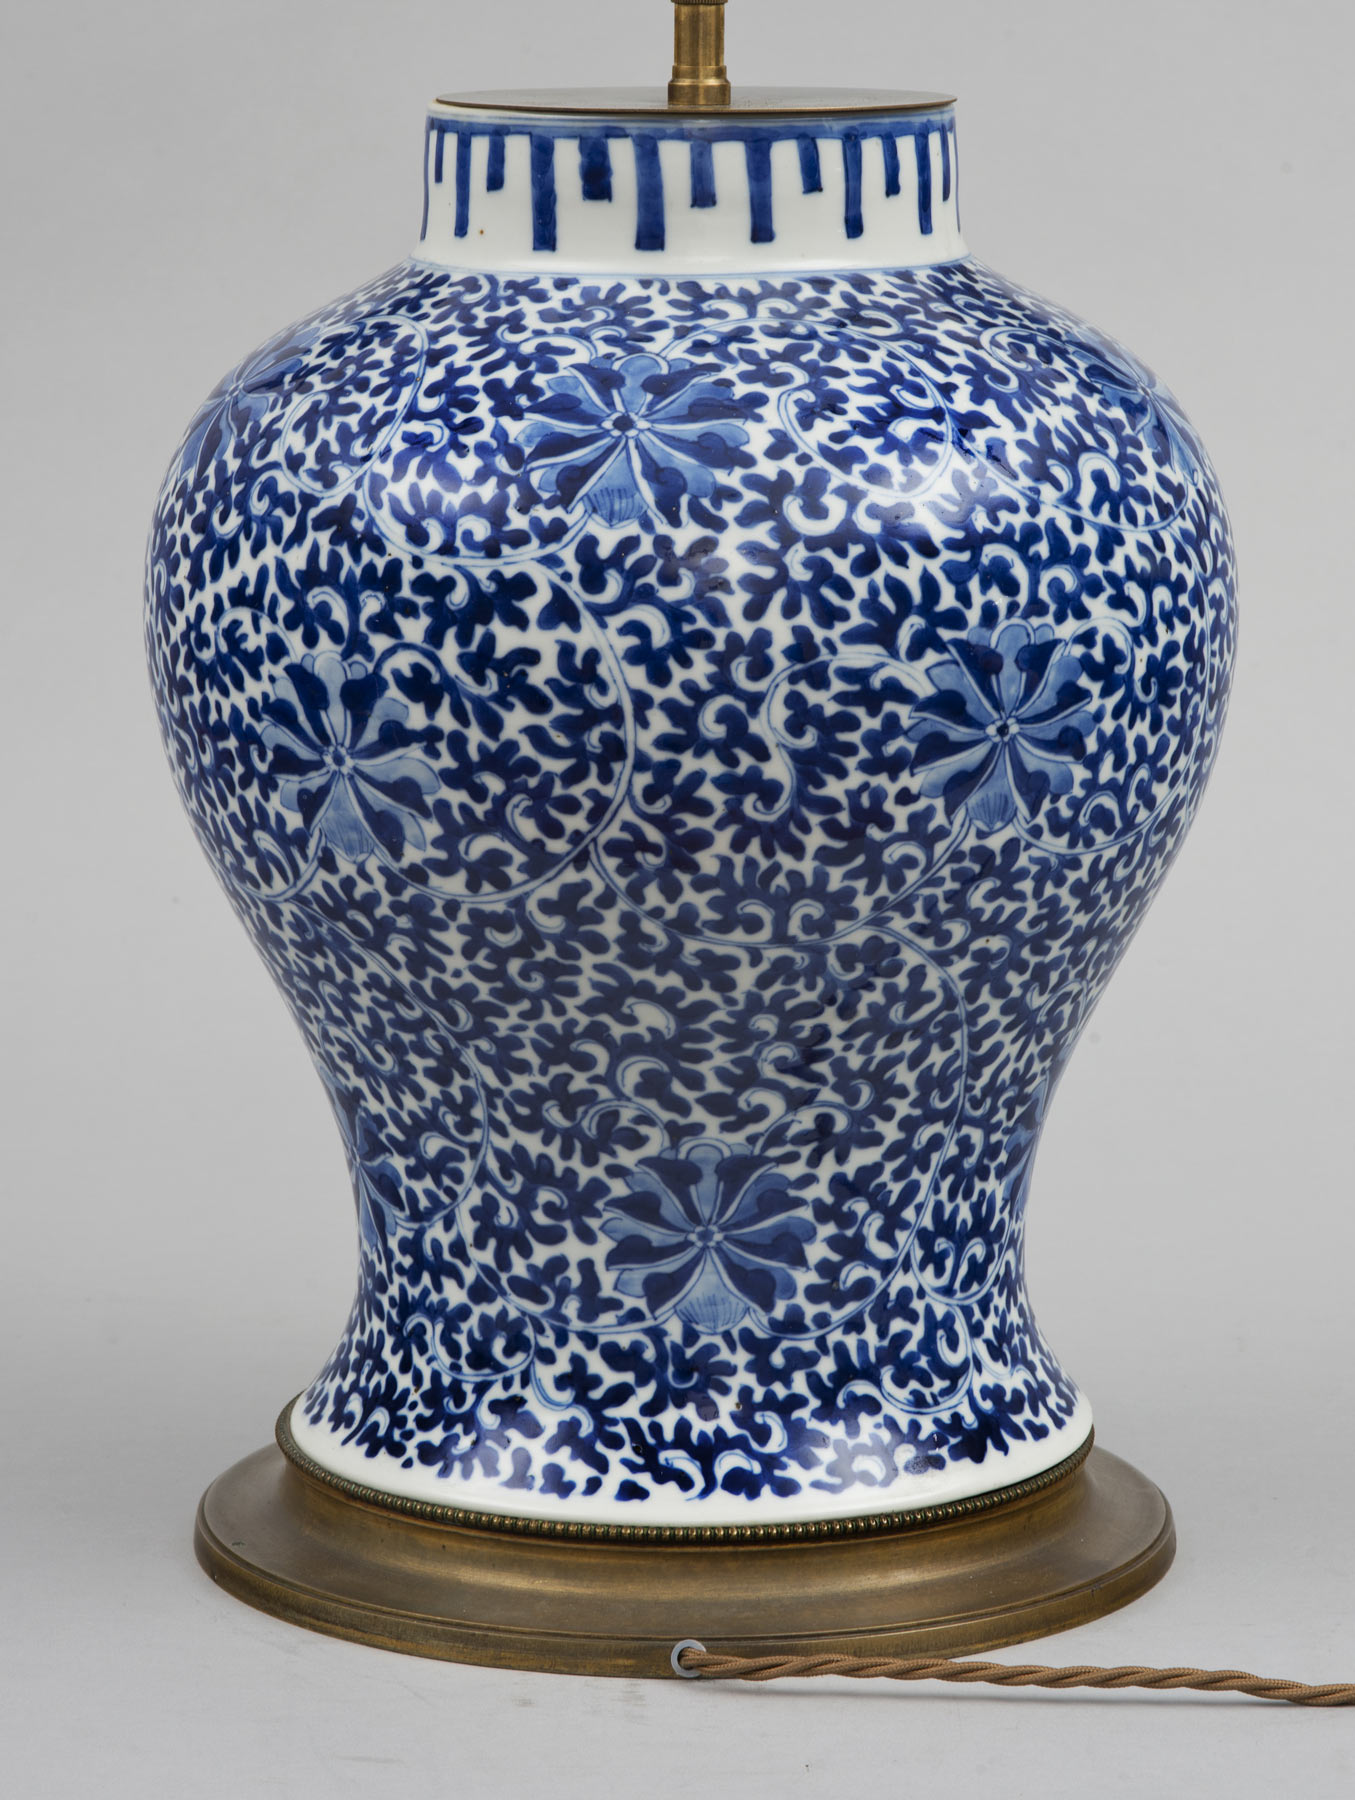 Chinese Blue Amp White Porcelain Vase Lamp Circa 1880